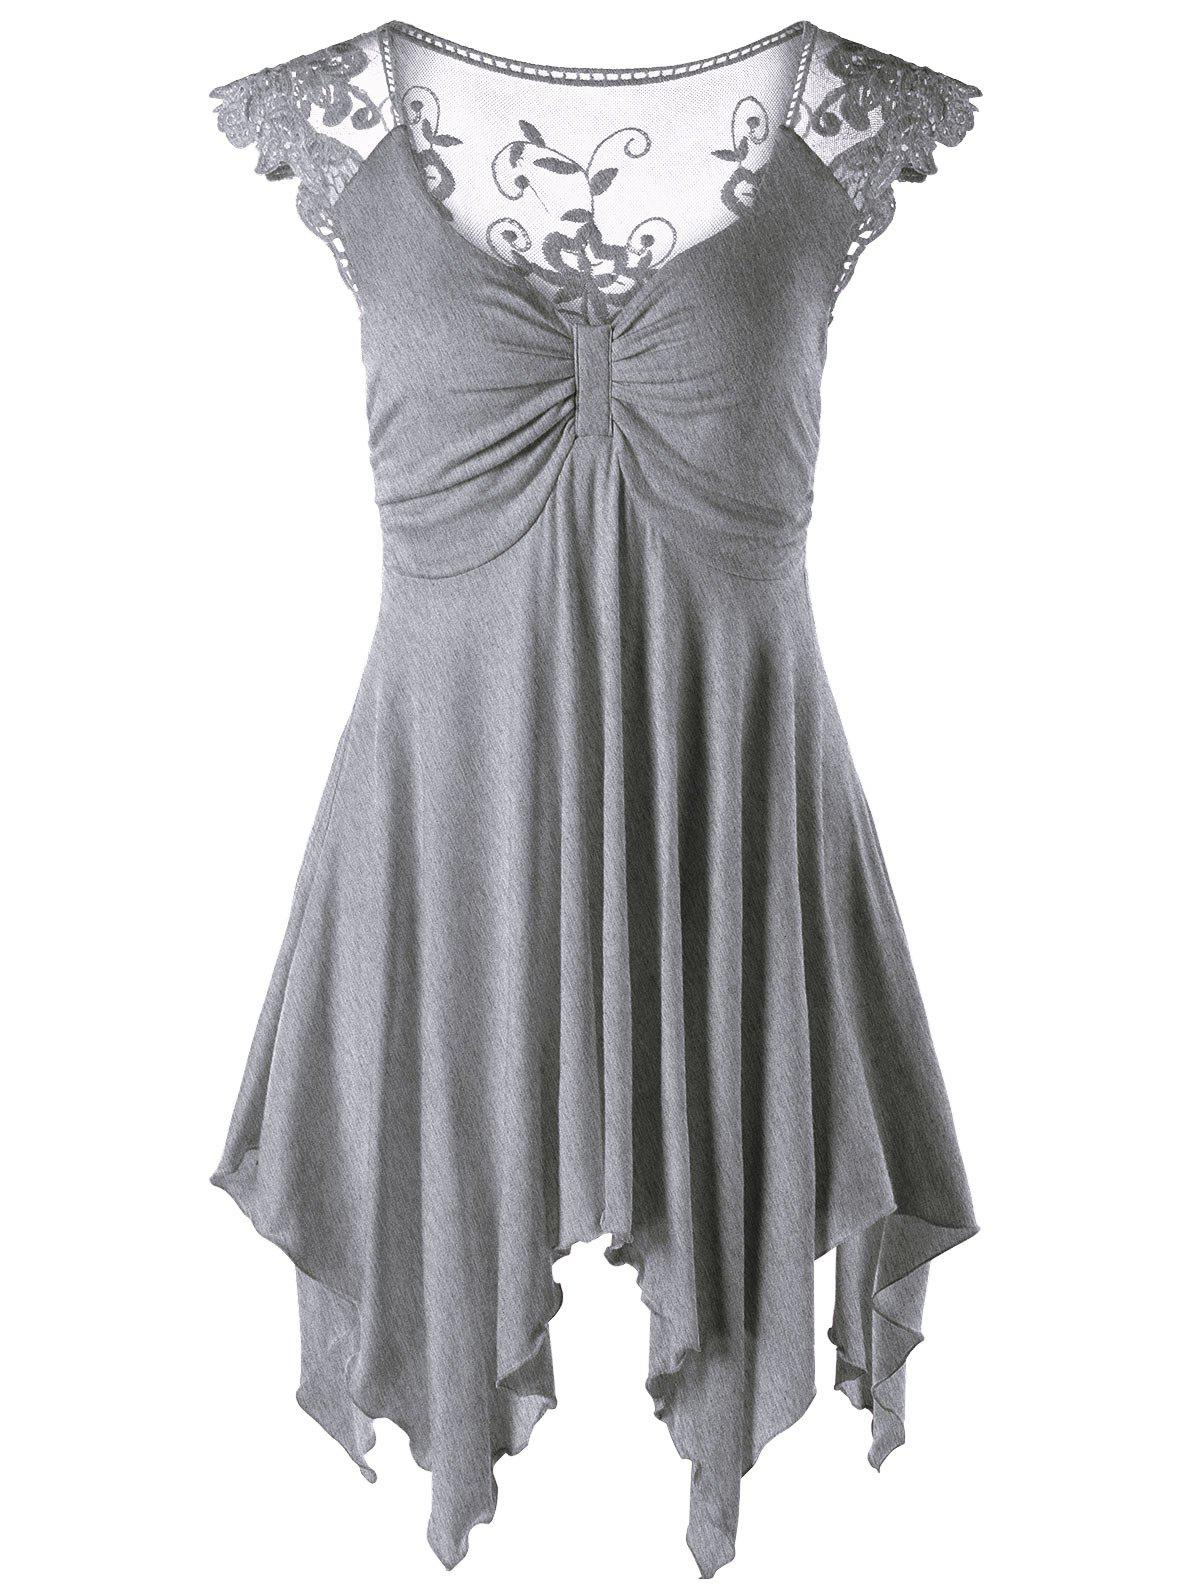 Lace Panel Cap Sleeve Asymmetric Top - GRAY L